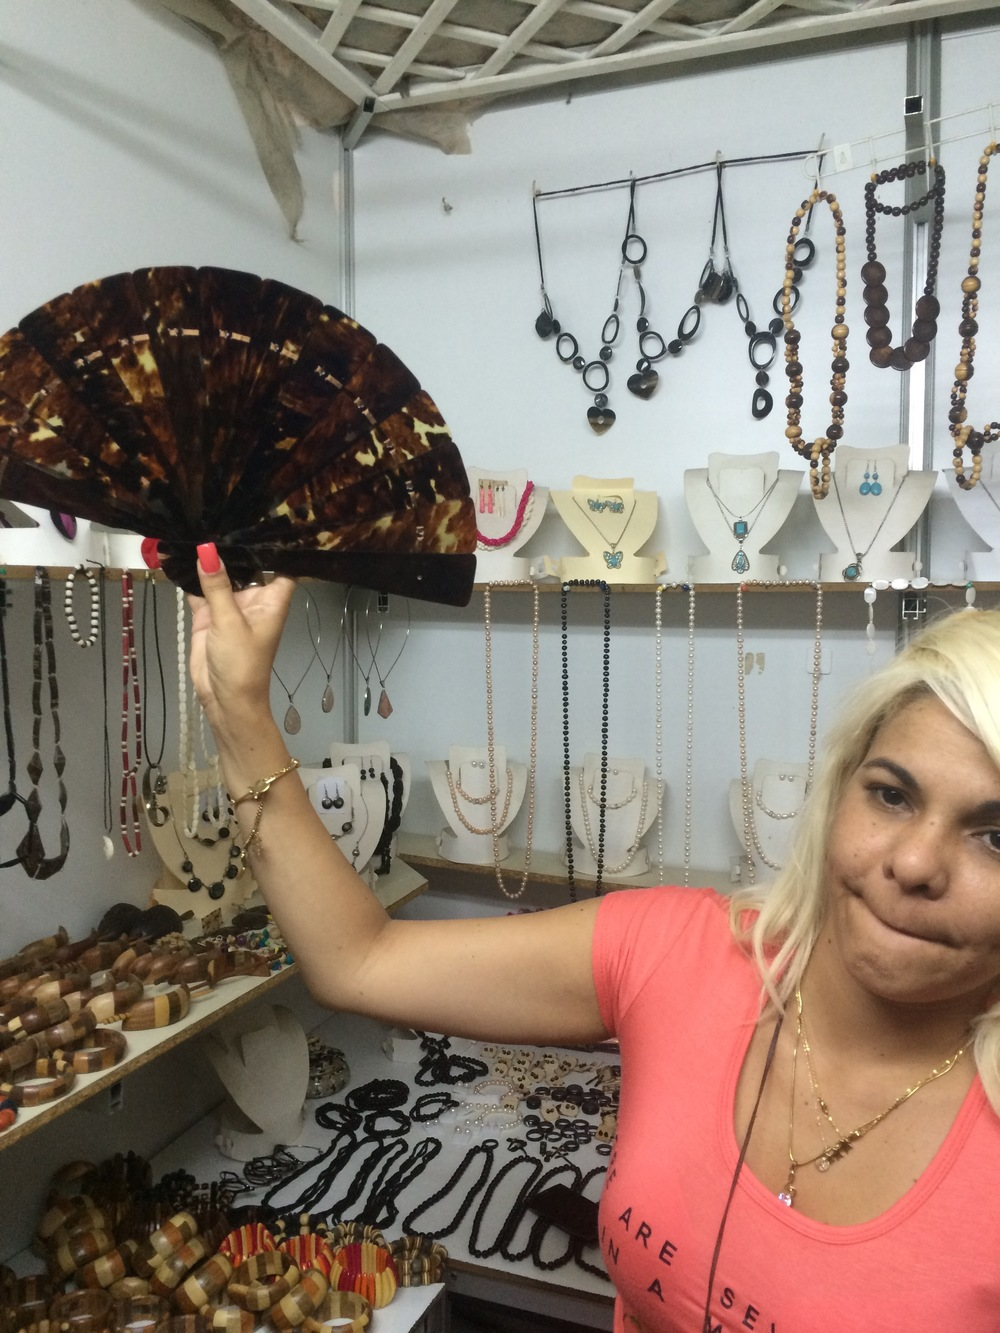 Fan made from hawksbill turtle shell for sale in Havana